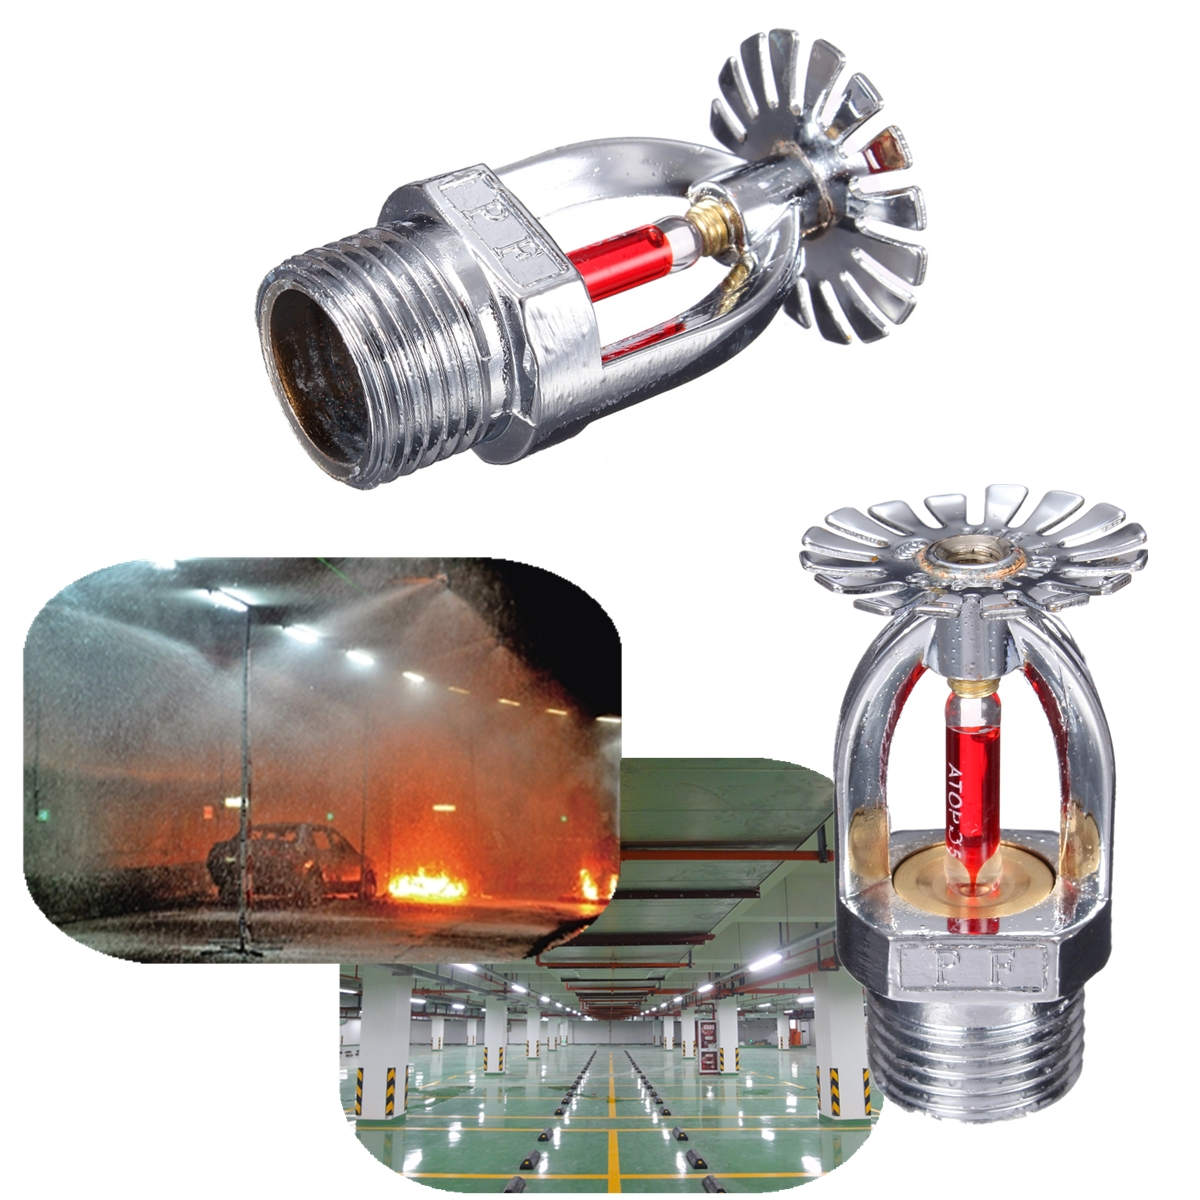 Details about 68℃ ZSTX-15 Pendent Fire Sprinkler Head For Fire  Extinguishing System Protection